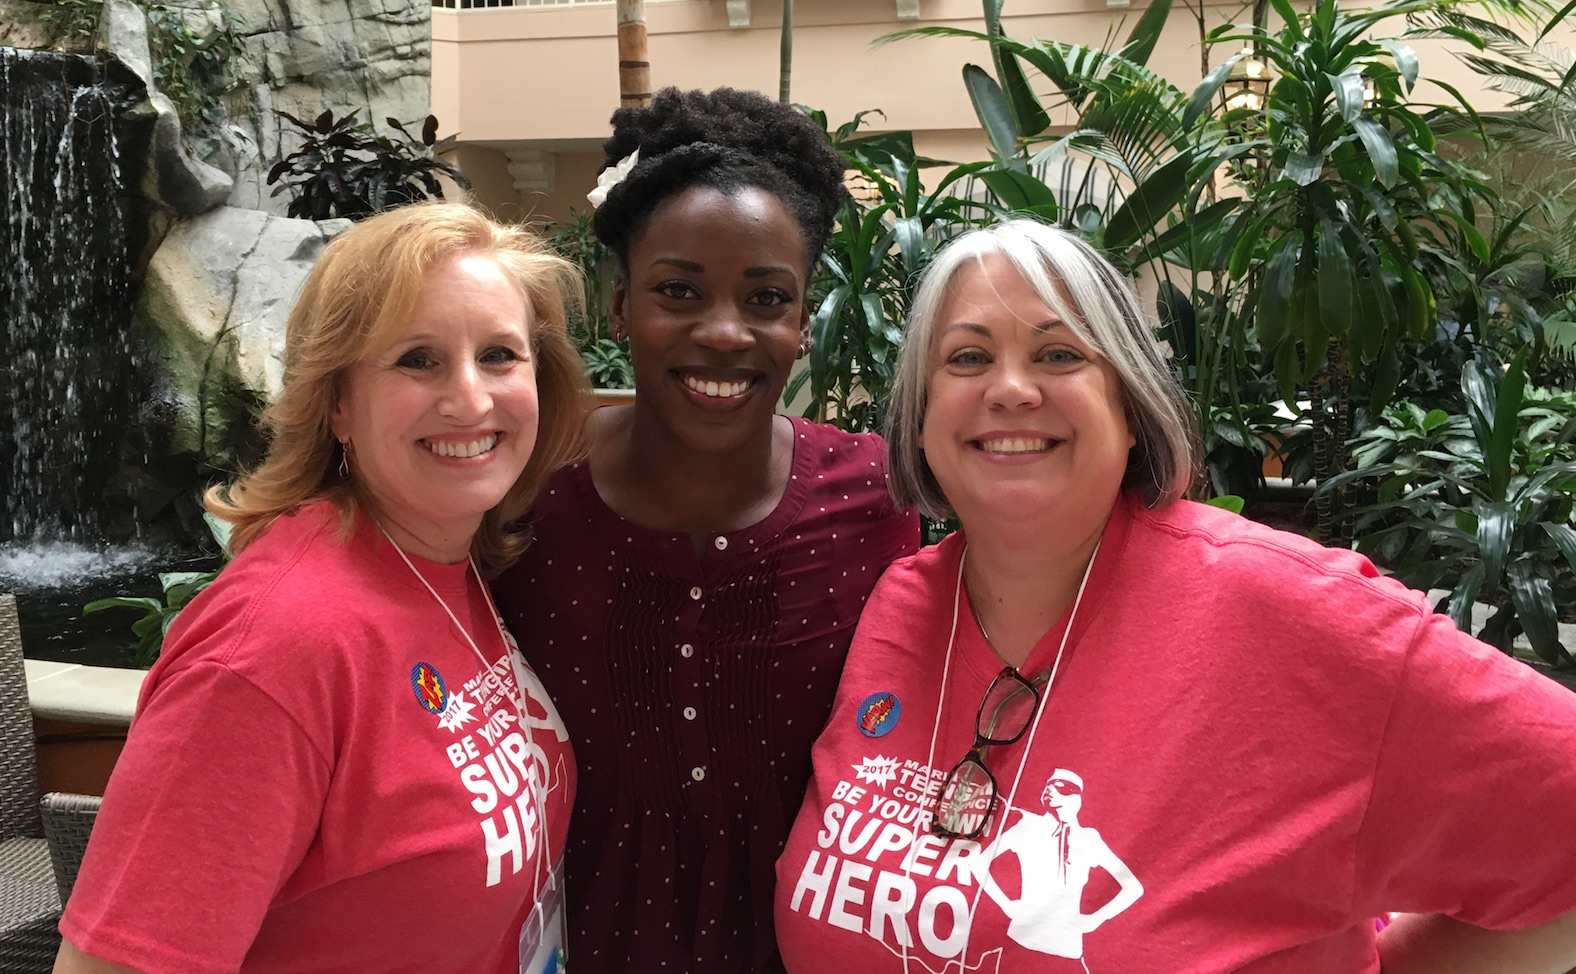 Left to right: Marti Rule, Hivery concierge and co-chair Marin Teen Girl Conference with Alysia Montano,keynote speaker and local Olympic sprinter, and Kris Cirby,co-chair Marin Teen Girl Conference.